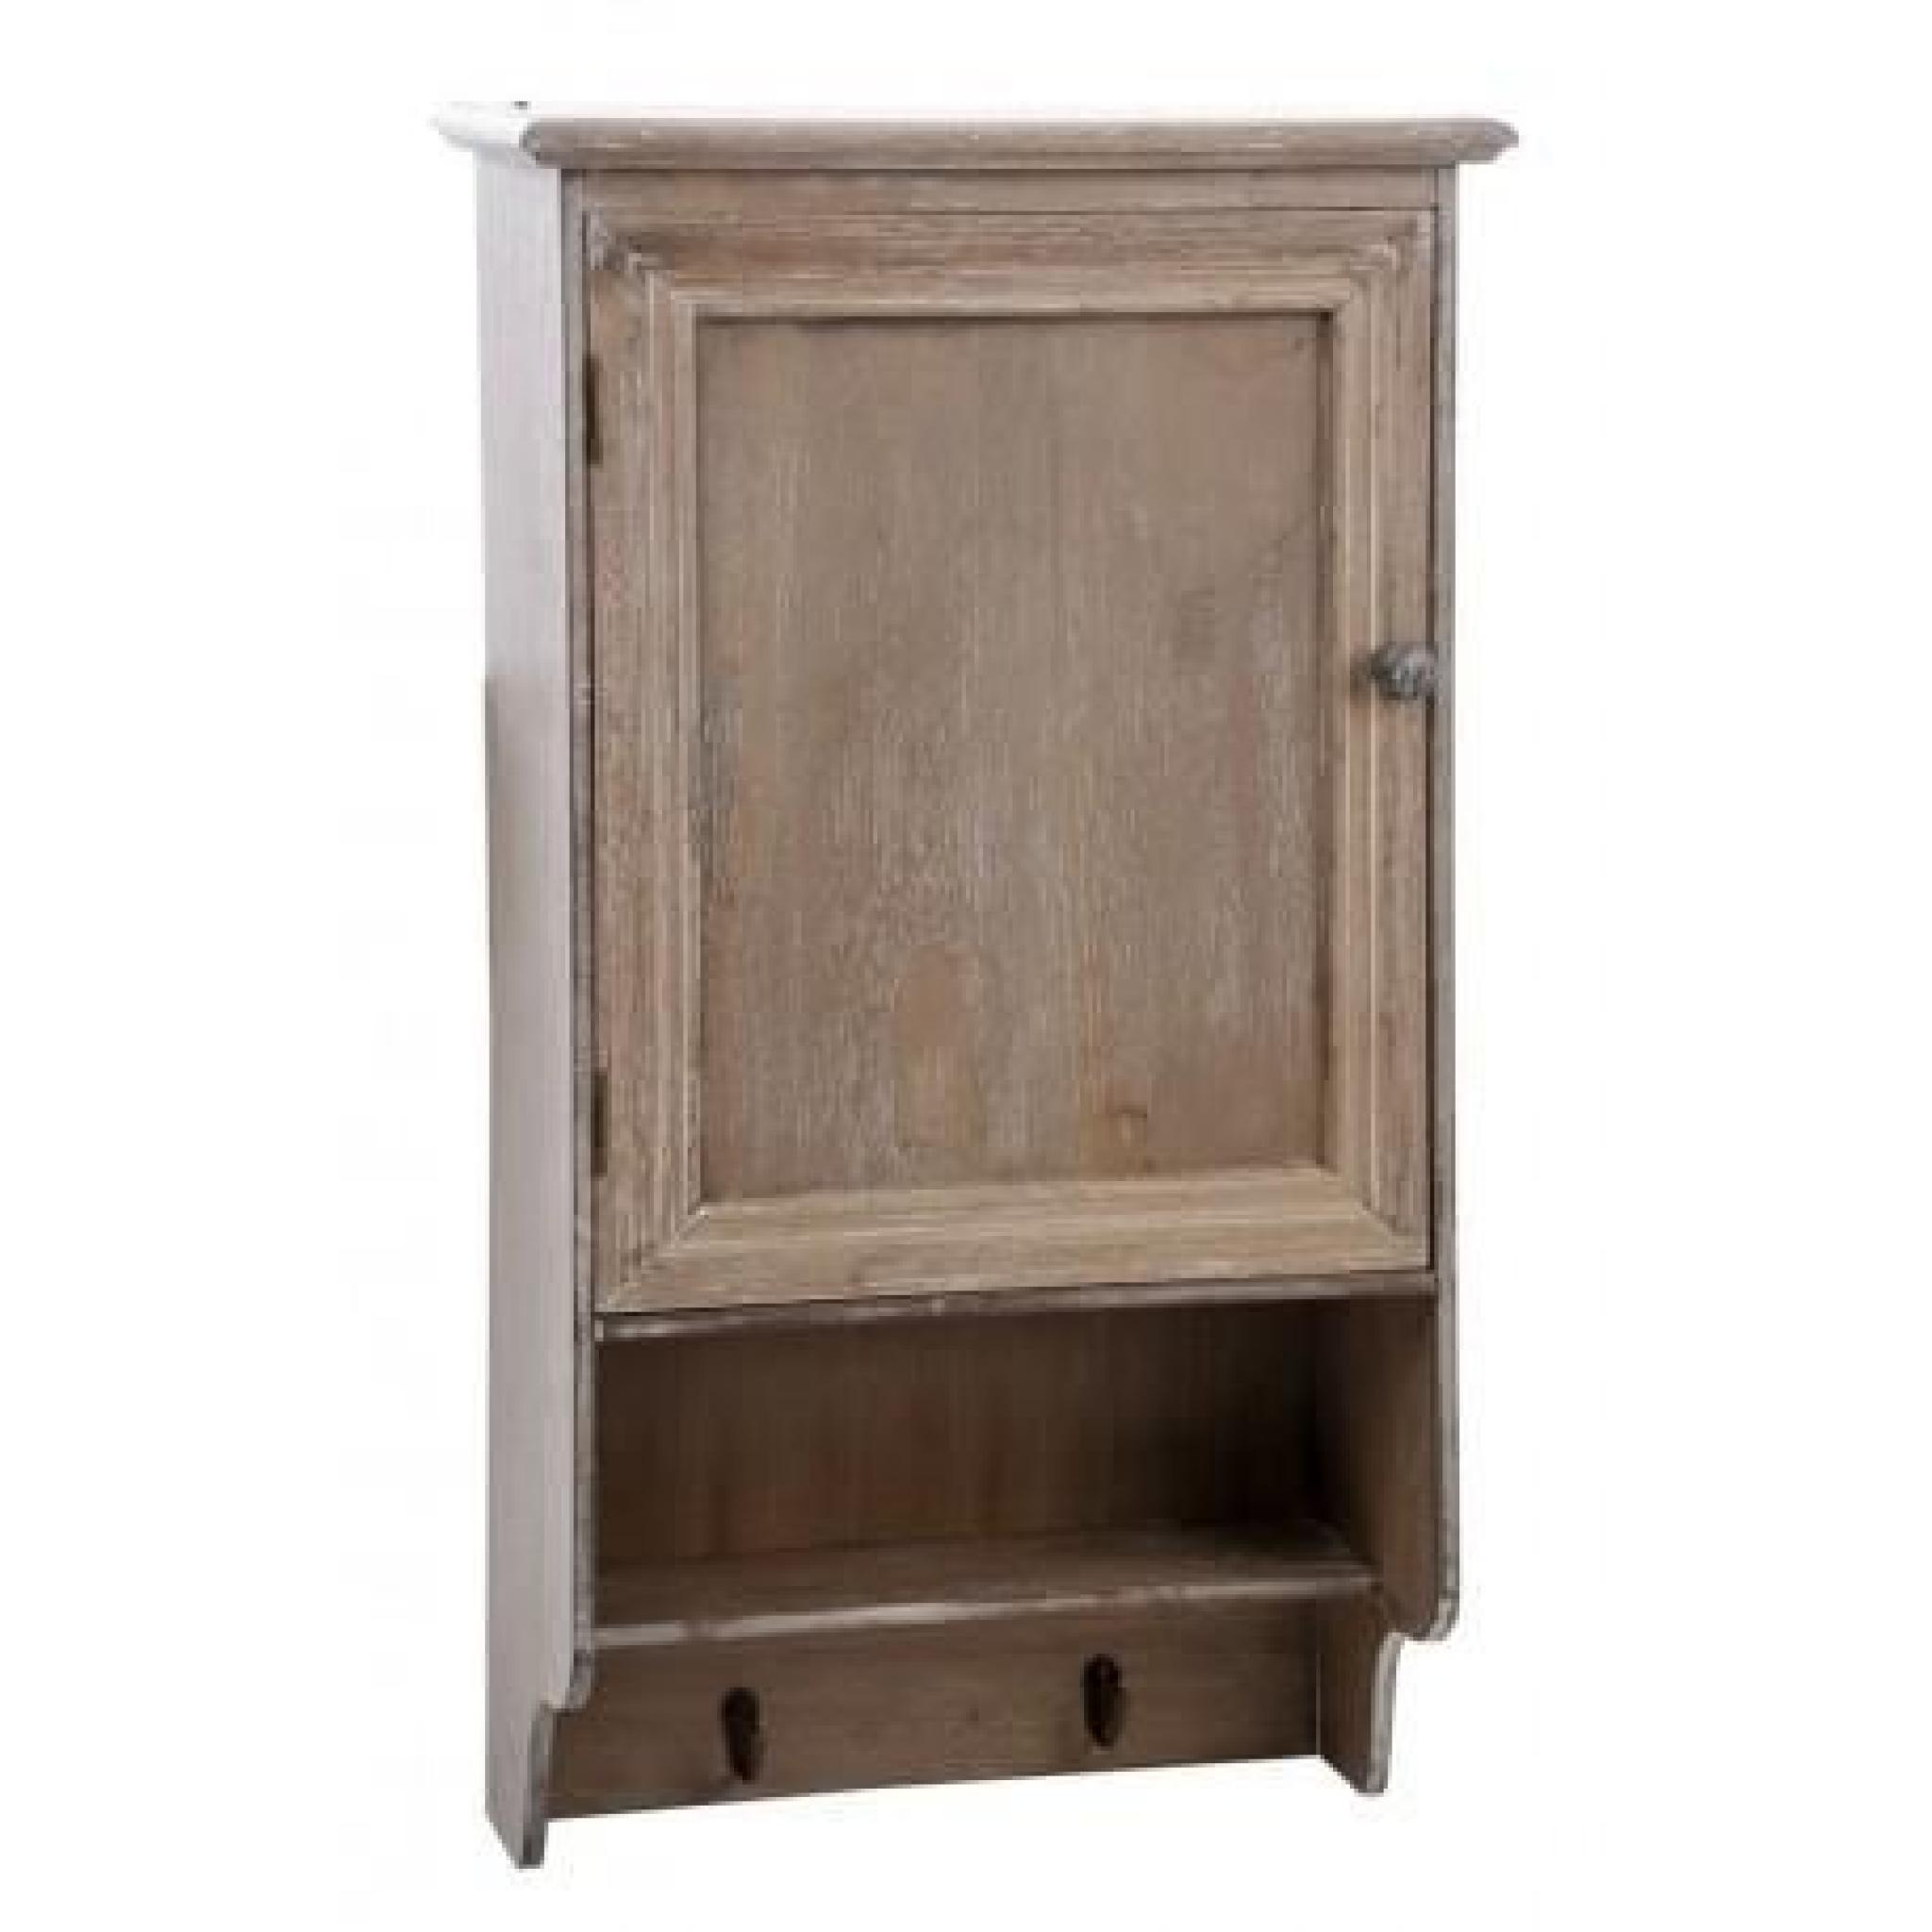 petite armoire murale 1 porte en bois brut blanchi 42x20x79cm j line achat vente armoire de. Black Bedroom Furniture Sets. Home Design Ideas